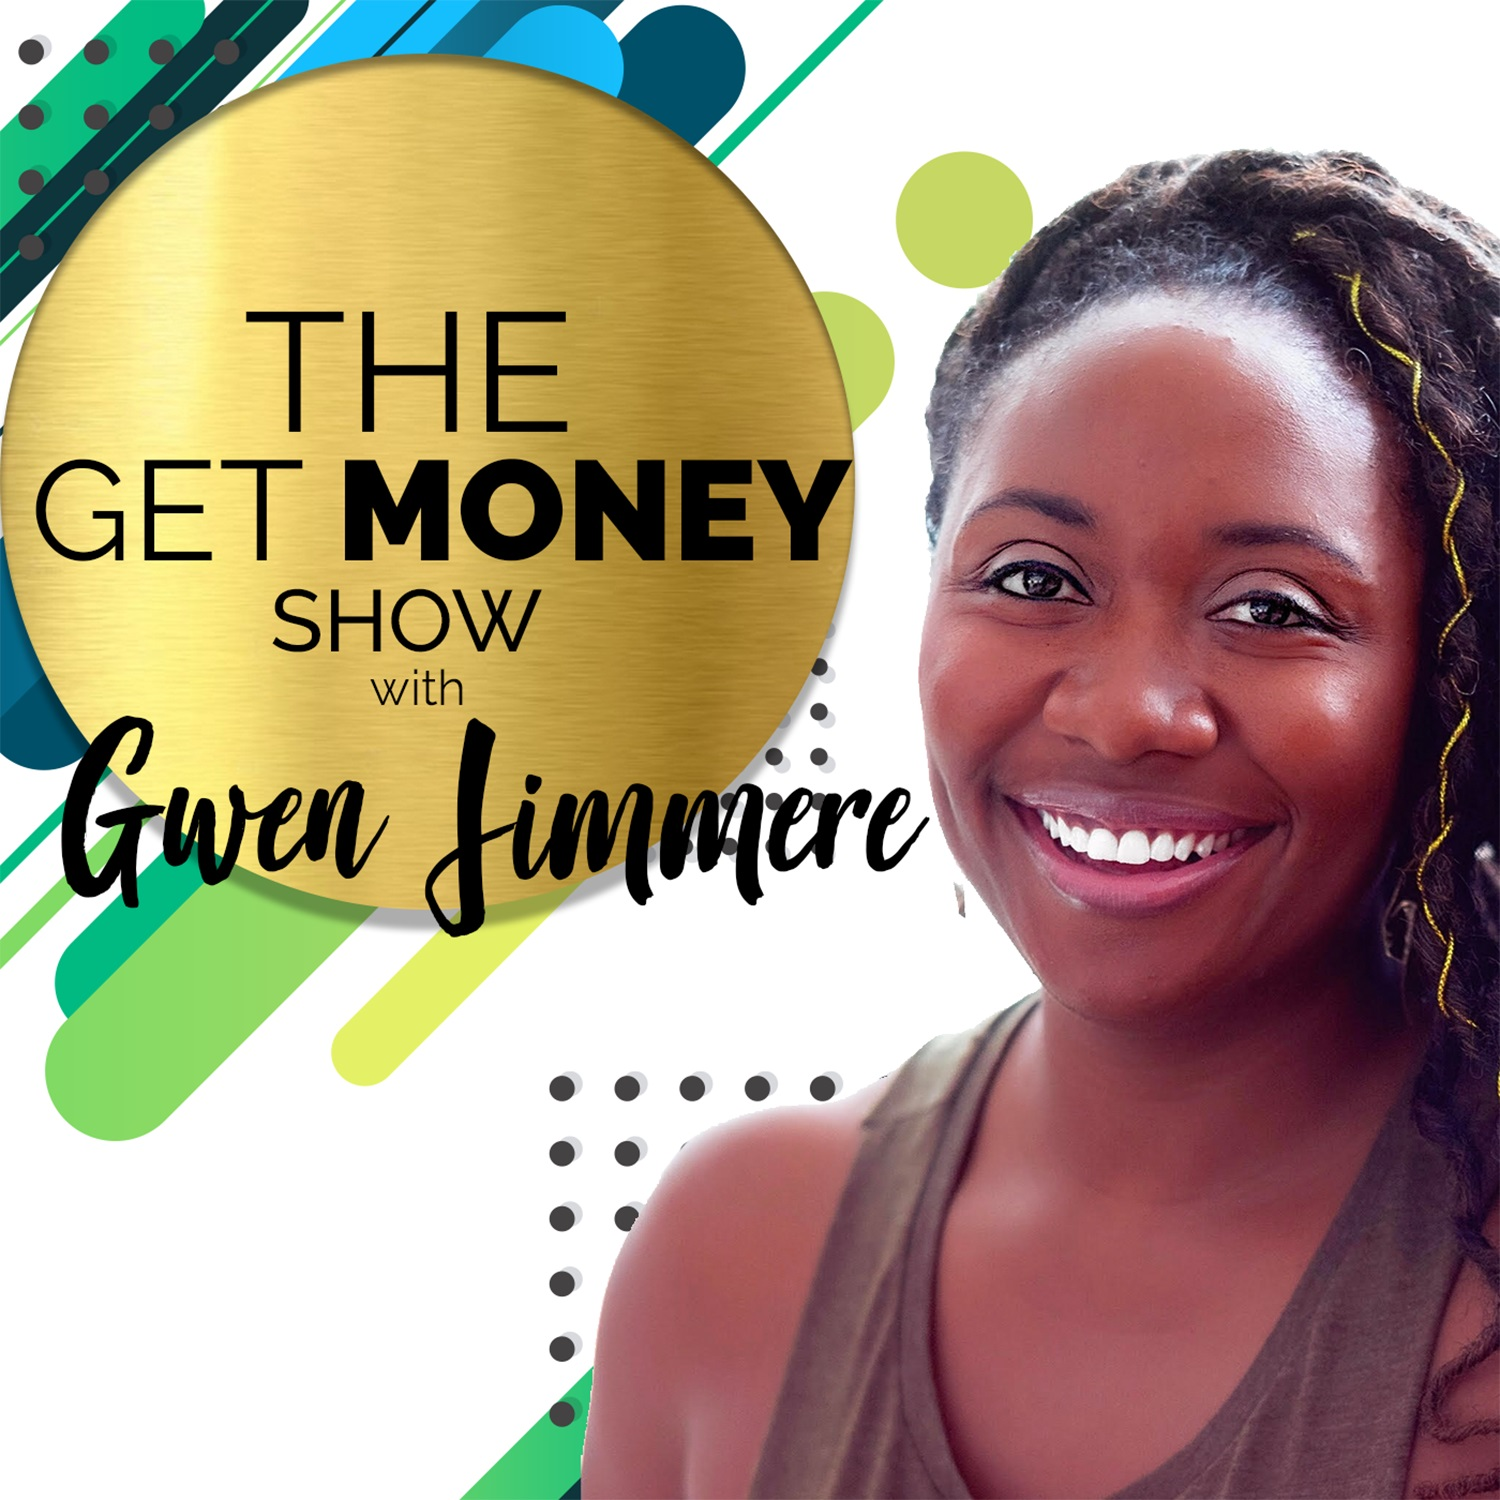 Get Money Show with Gwen Jimmere